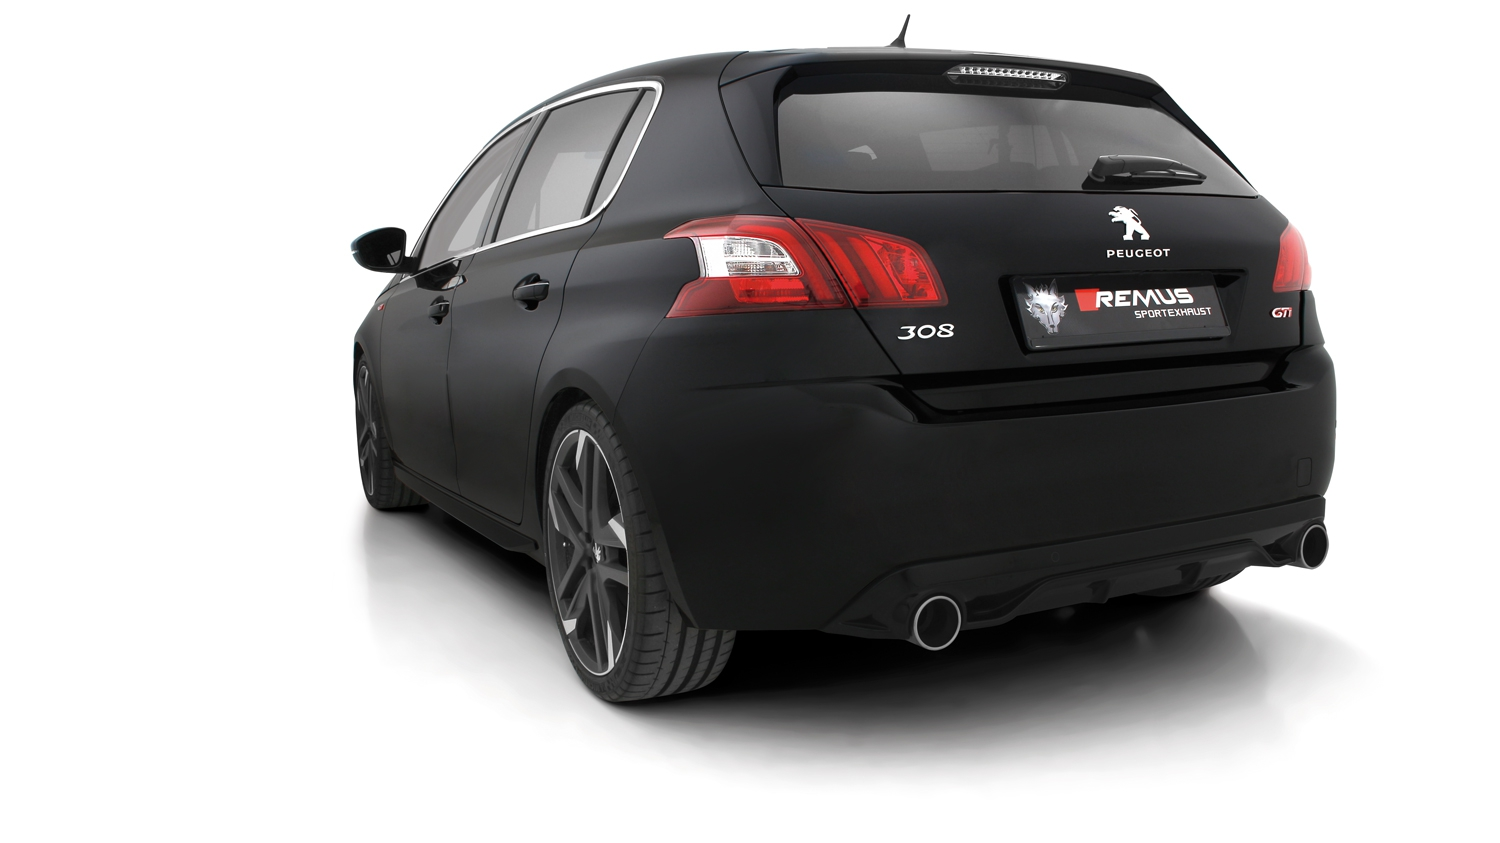 remus news - remus product information 27-2016 peugeot 308 gti